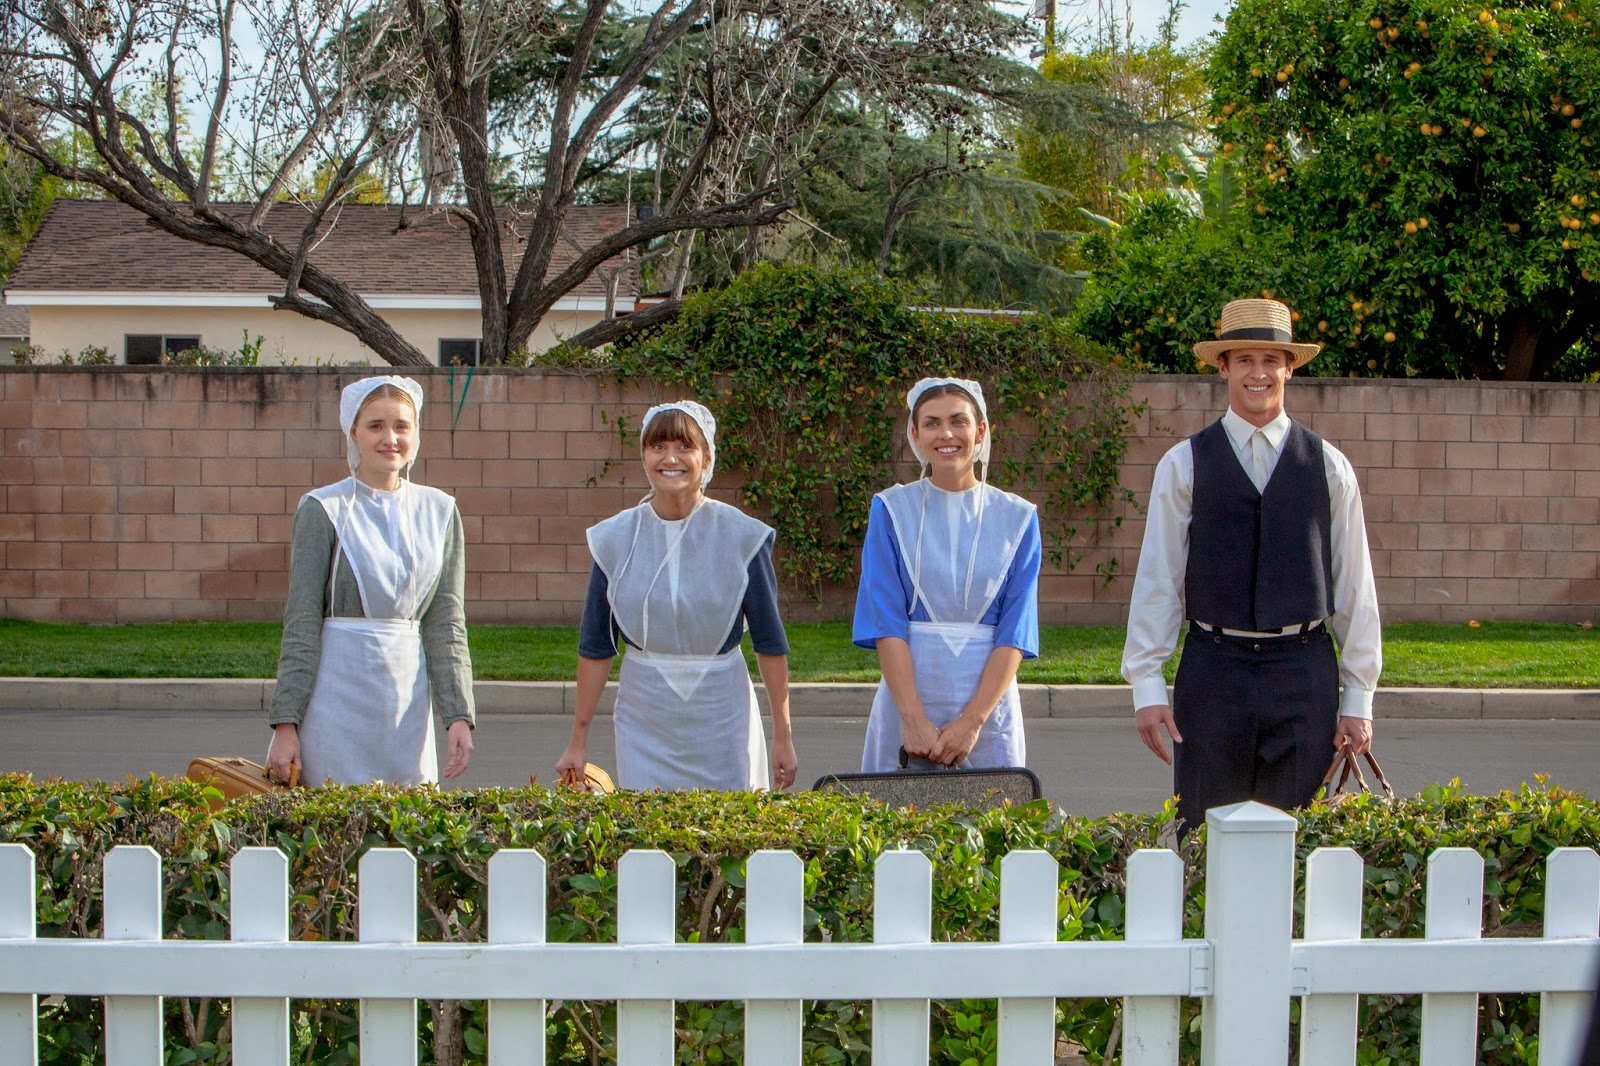 The amish of Expecting Amish